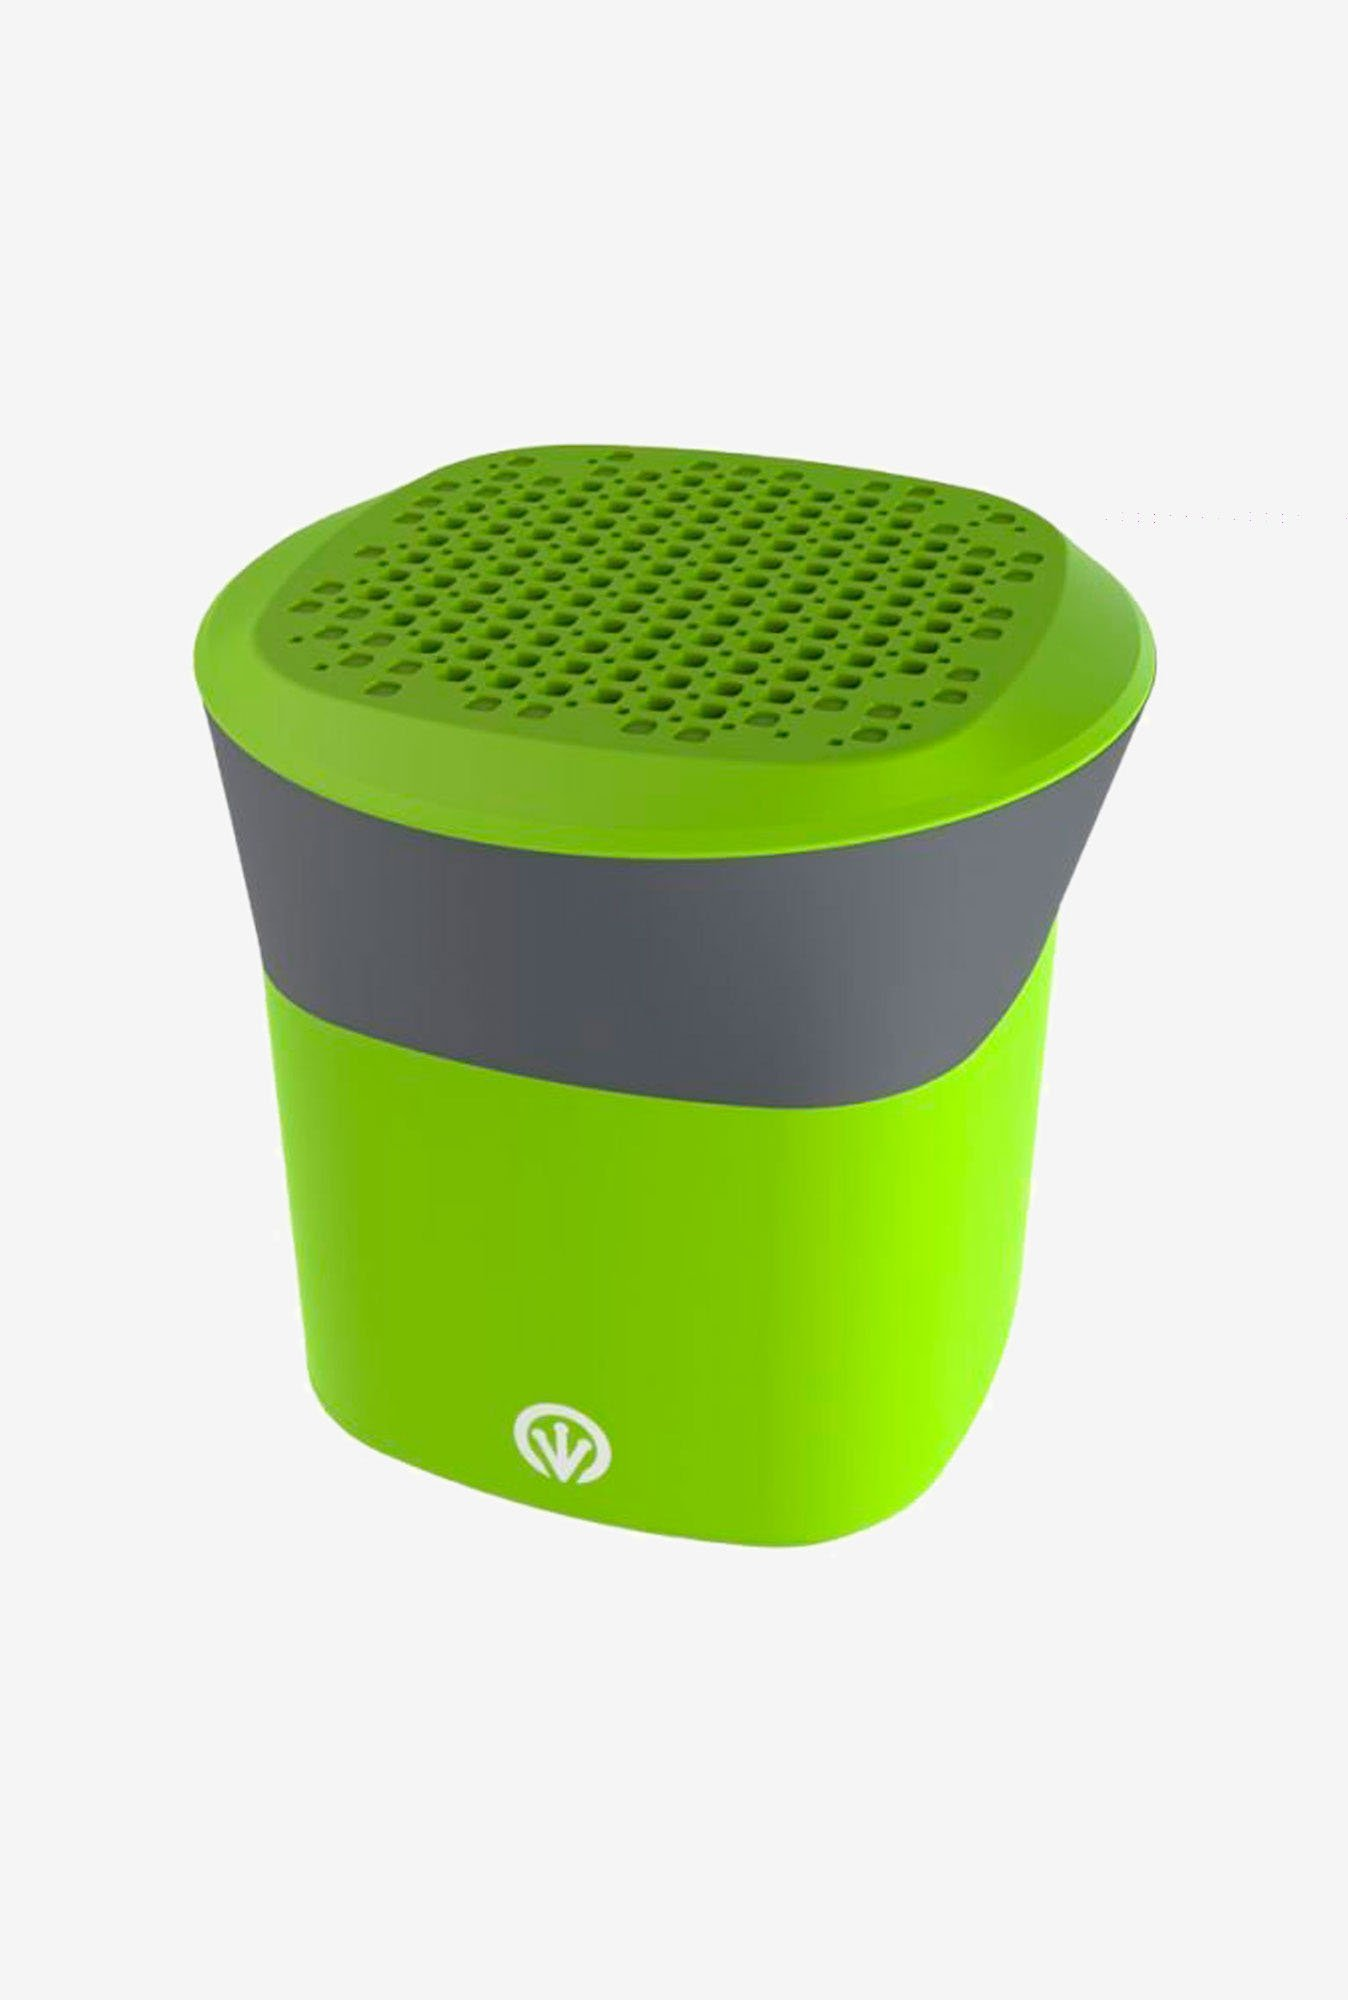 iFrogz IFTPBL-GR0 Bluetooth Speaker (Green)